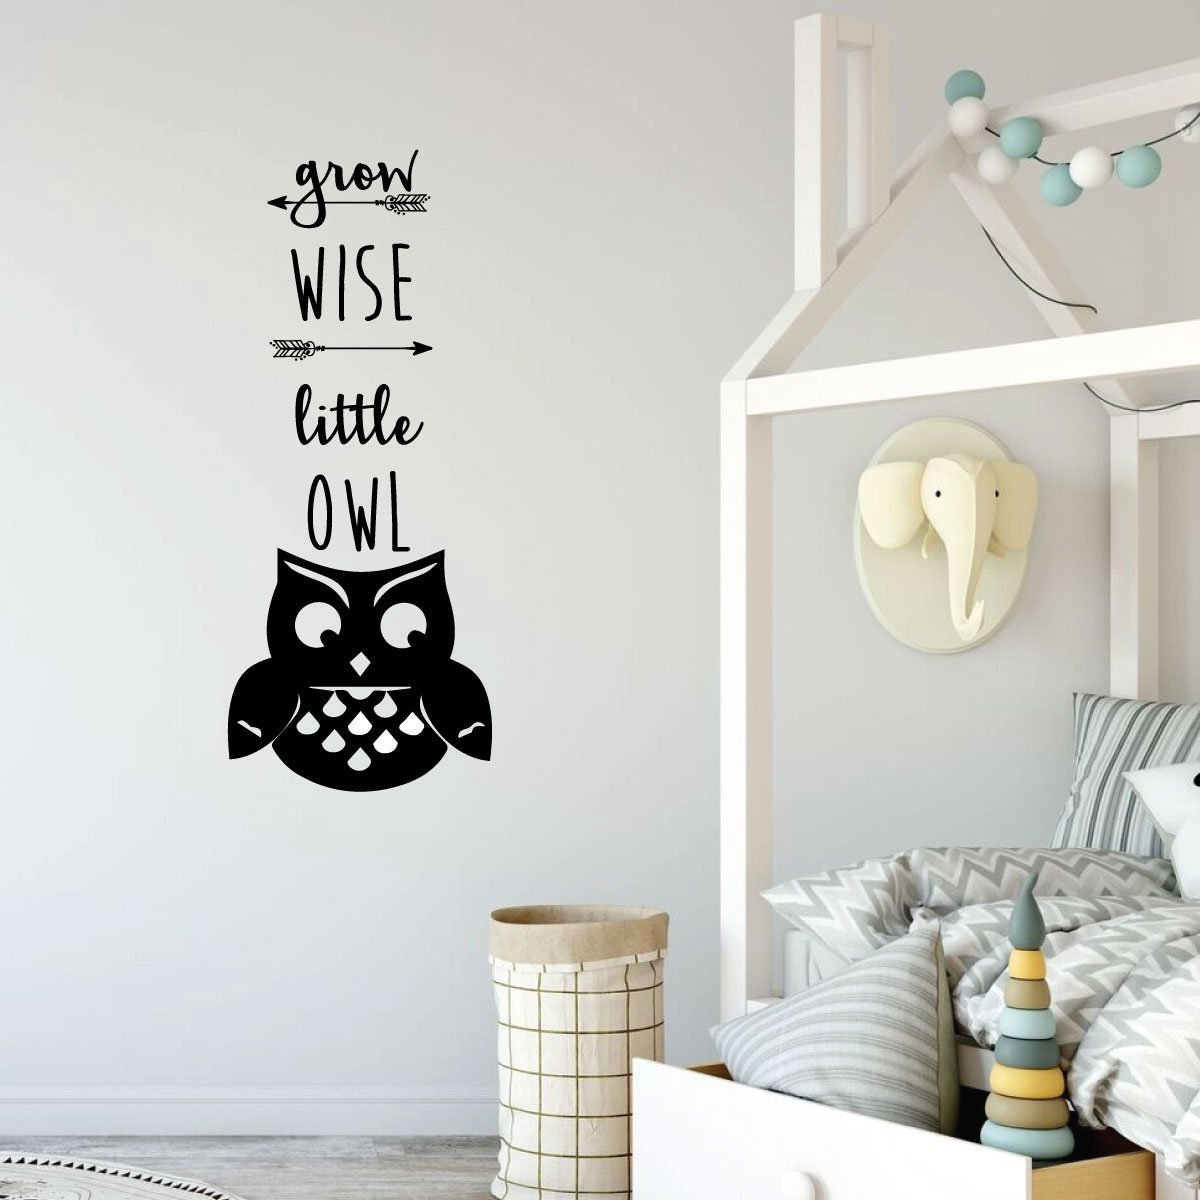 Grow Wise Little Owl Quote For Kids Bedroom Vinyl Decor Wall Decal